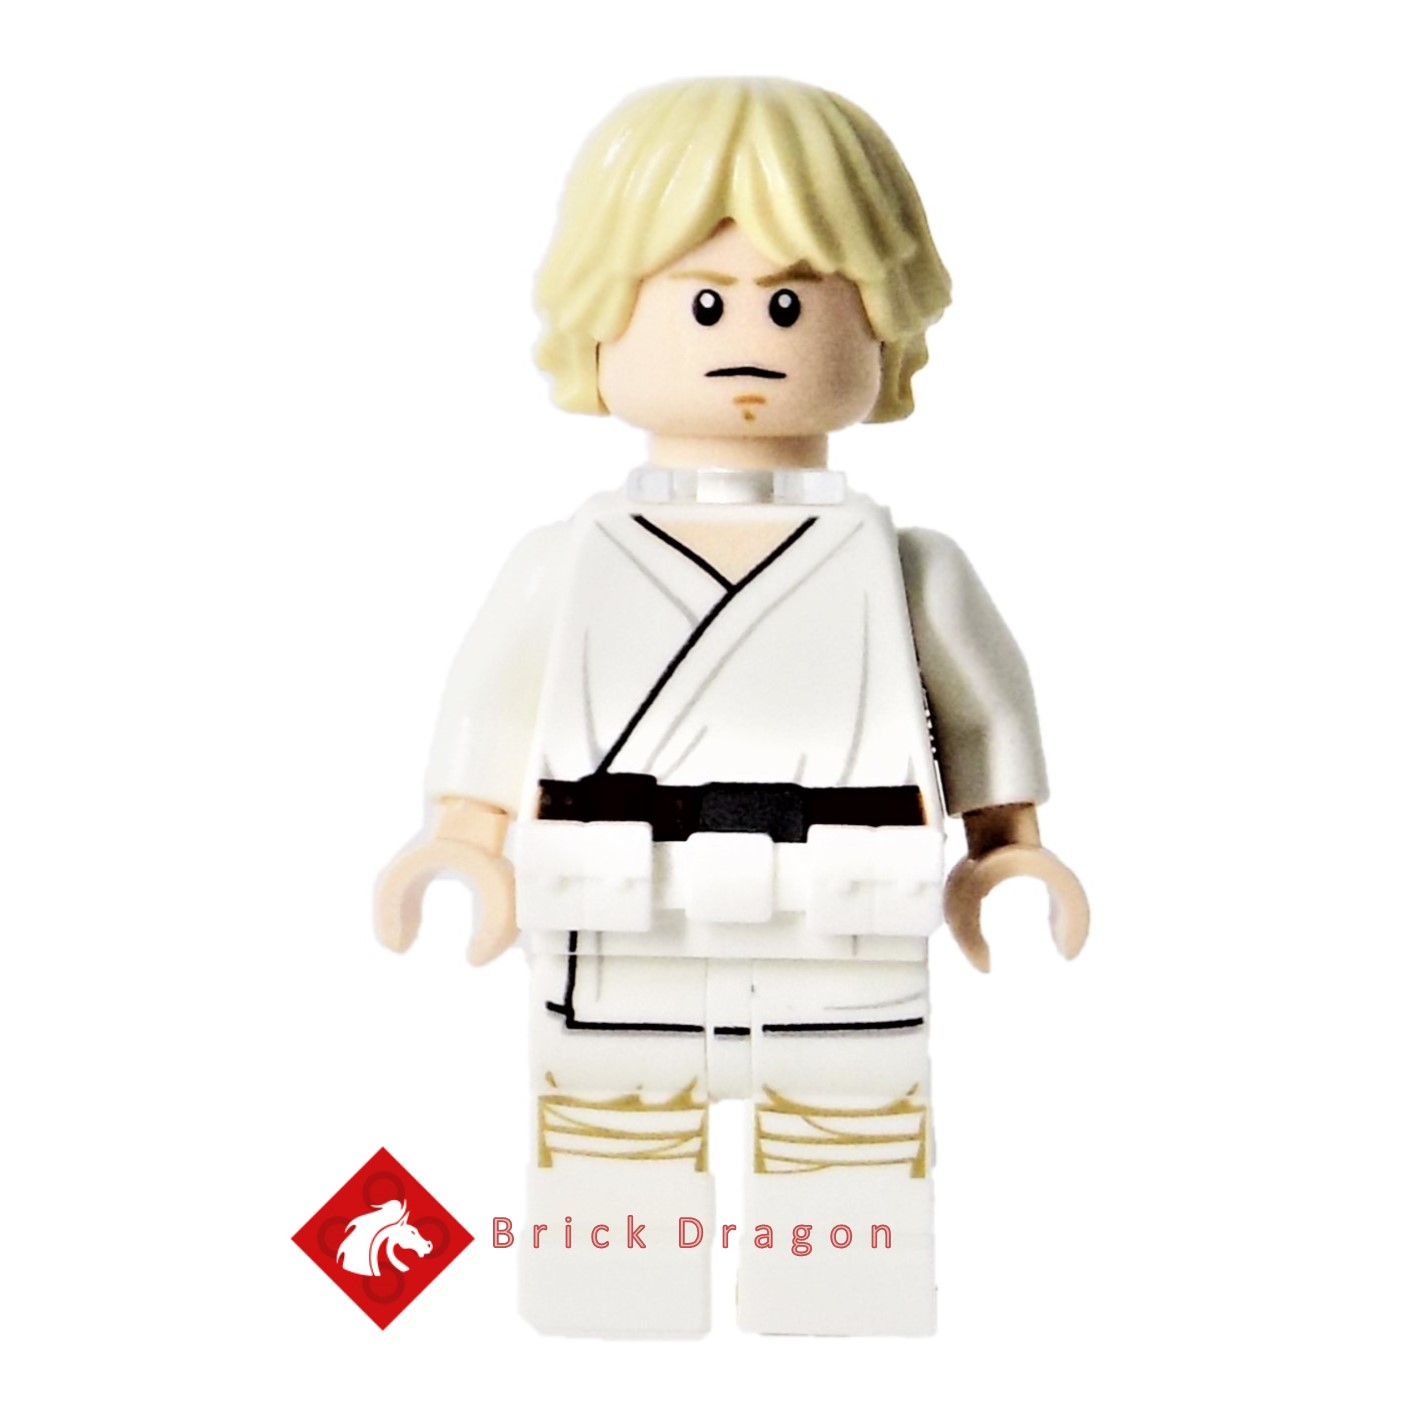 LEGO STAR WARS Luke Skywalker  MINIFIG new from Lego set 75229 New